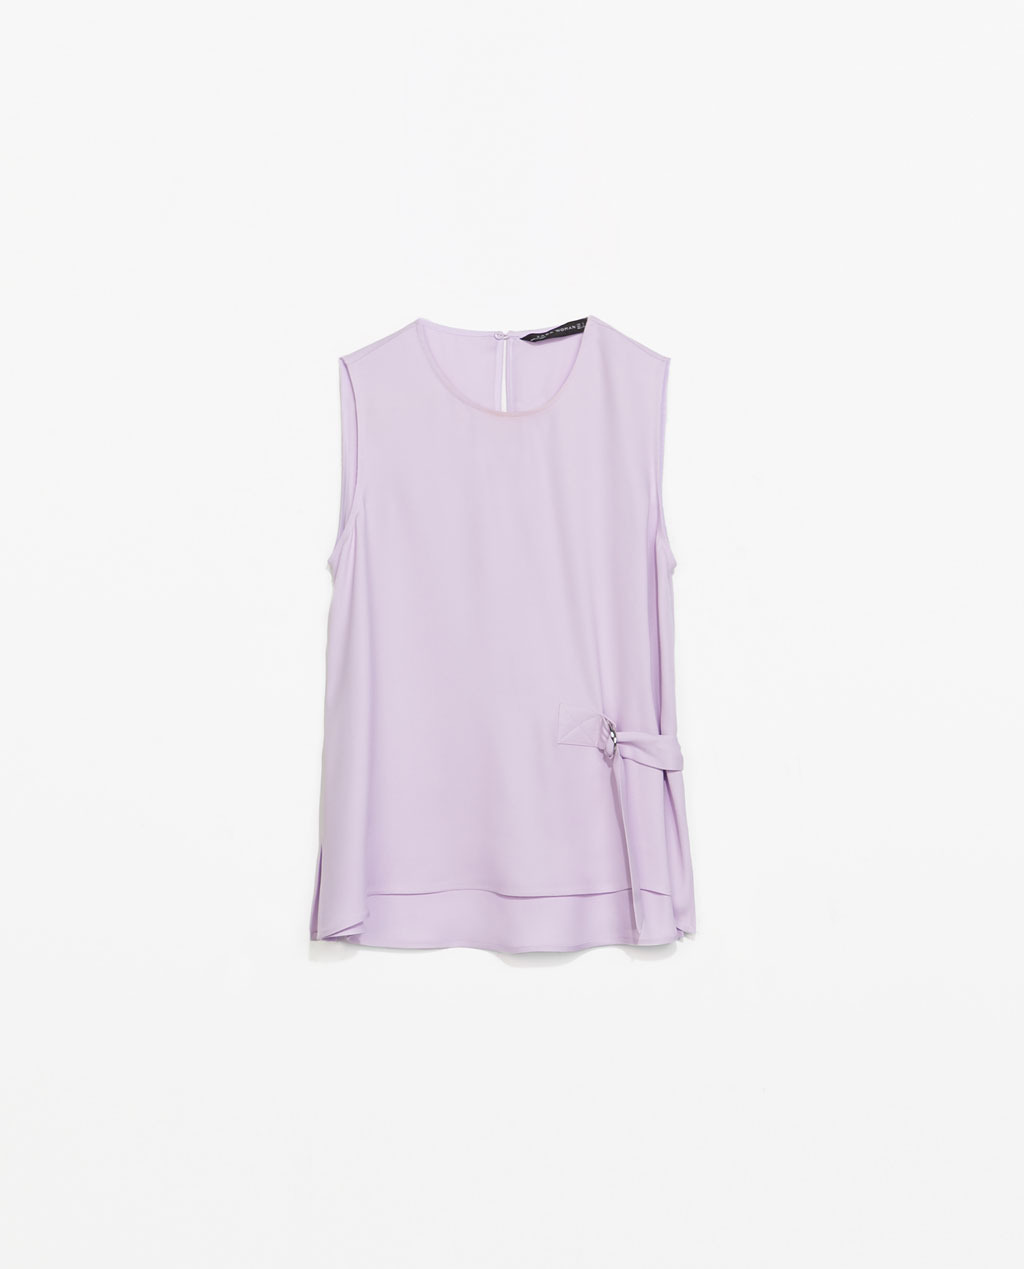 Top With Side Zip - pattern: plain; sleeve style: sleeveless; predominant colour: lilac; occasions: casual, evening, work, holiday, creative work; length: standard; style: top; fibres: viscose/rayon - 100%; fit: straight cut; neckline: crew; back detail: keyhole/peephole detail at back; sleeve length: sleeveless; texture group: crepes; pattern type: fabric; trends: sorbet shades; season: s/s 2014